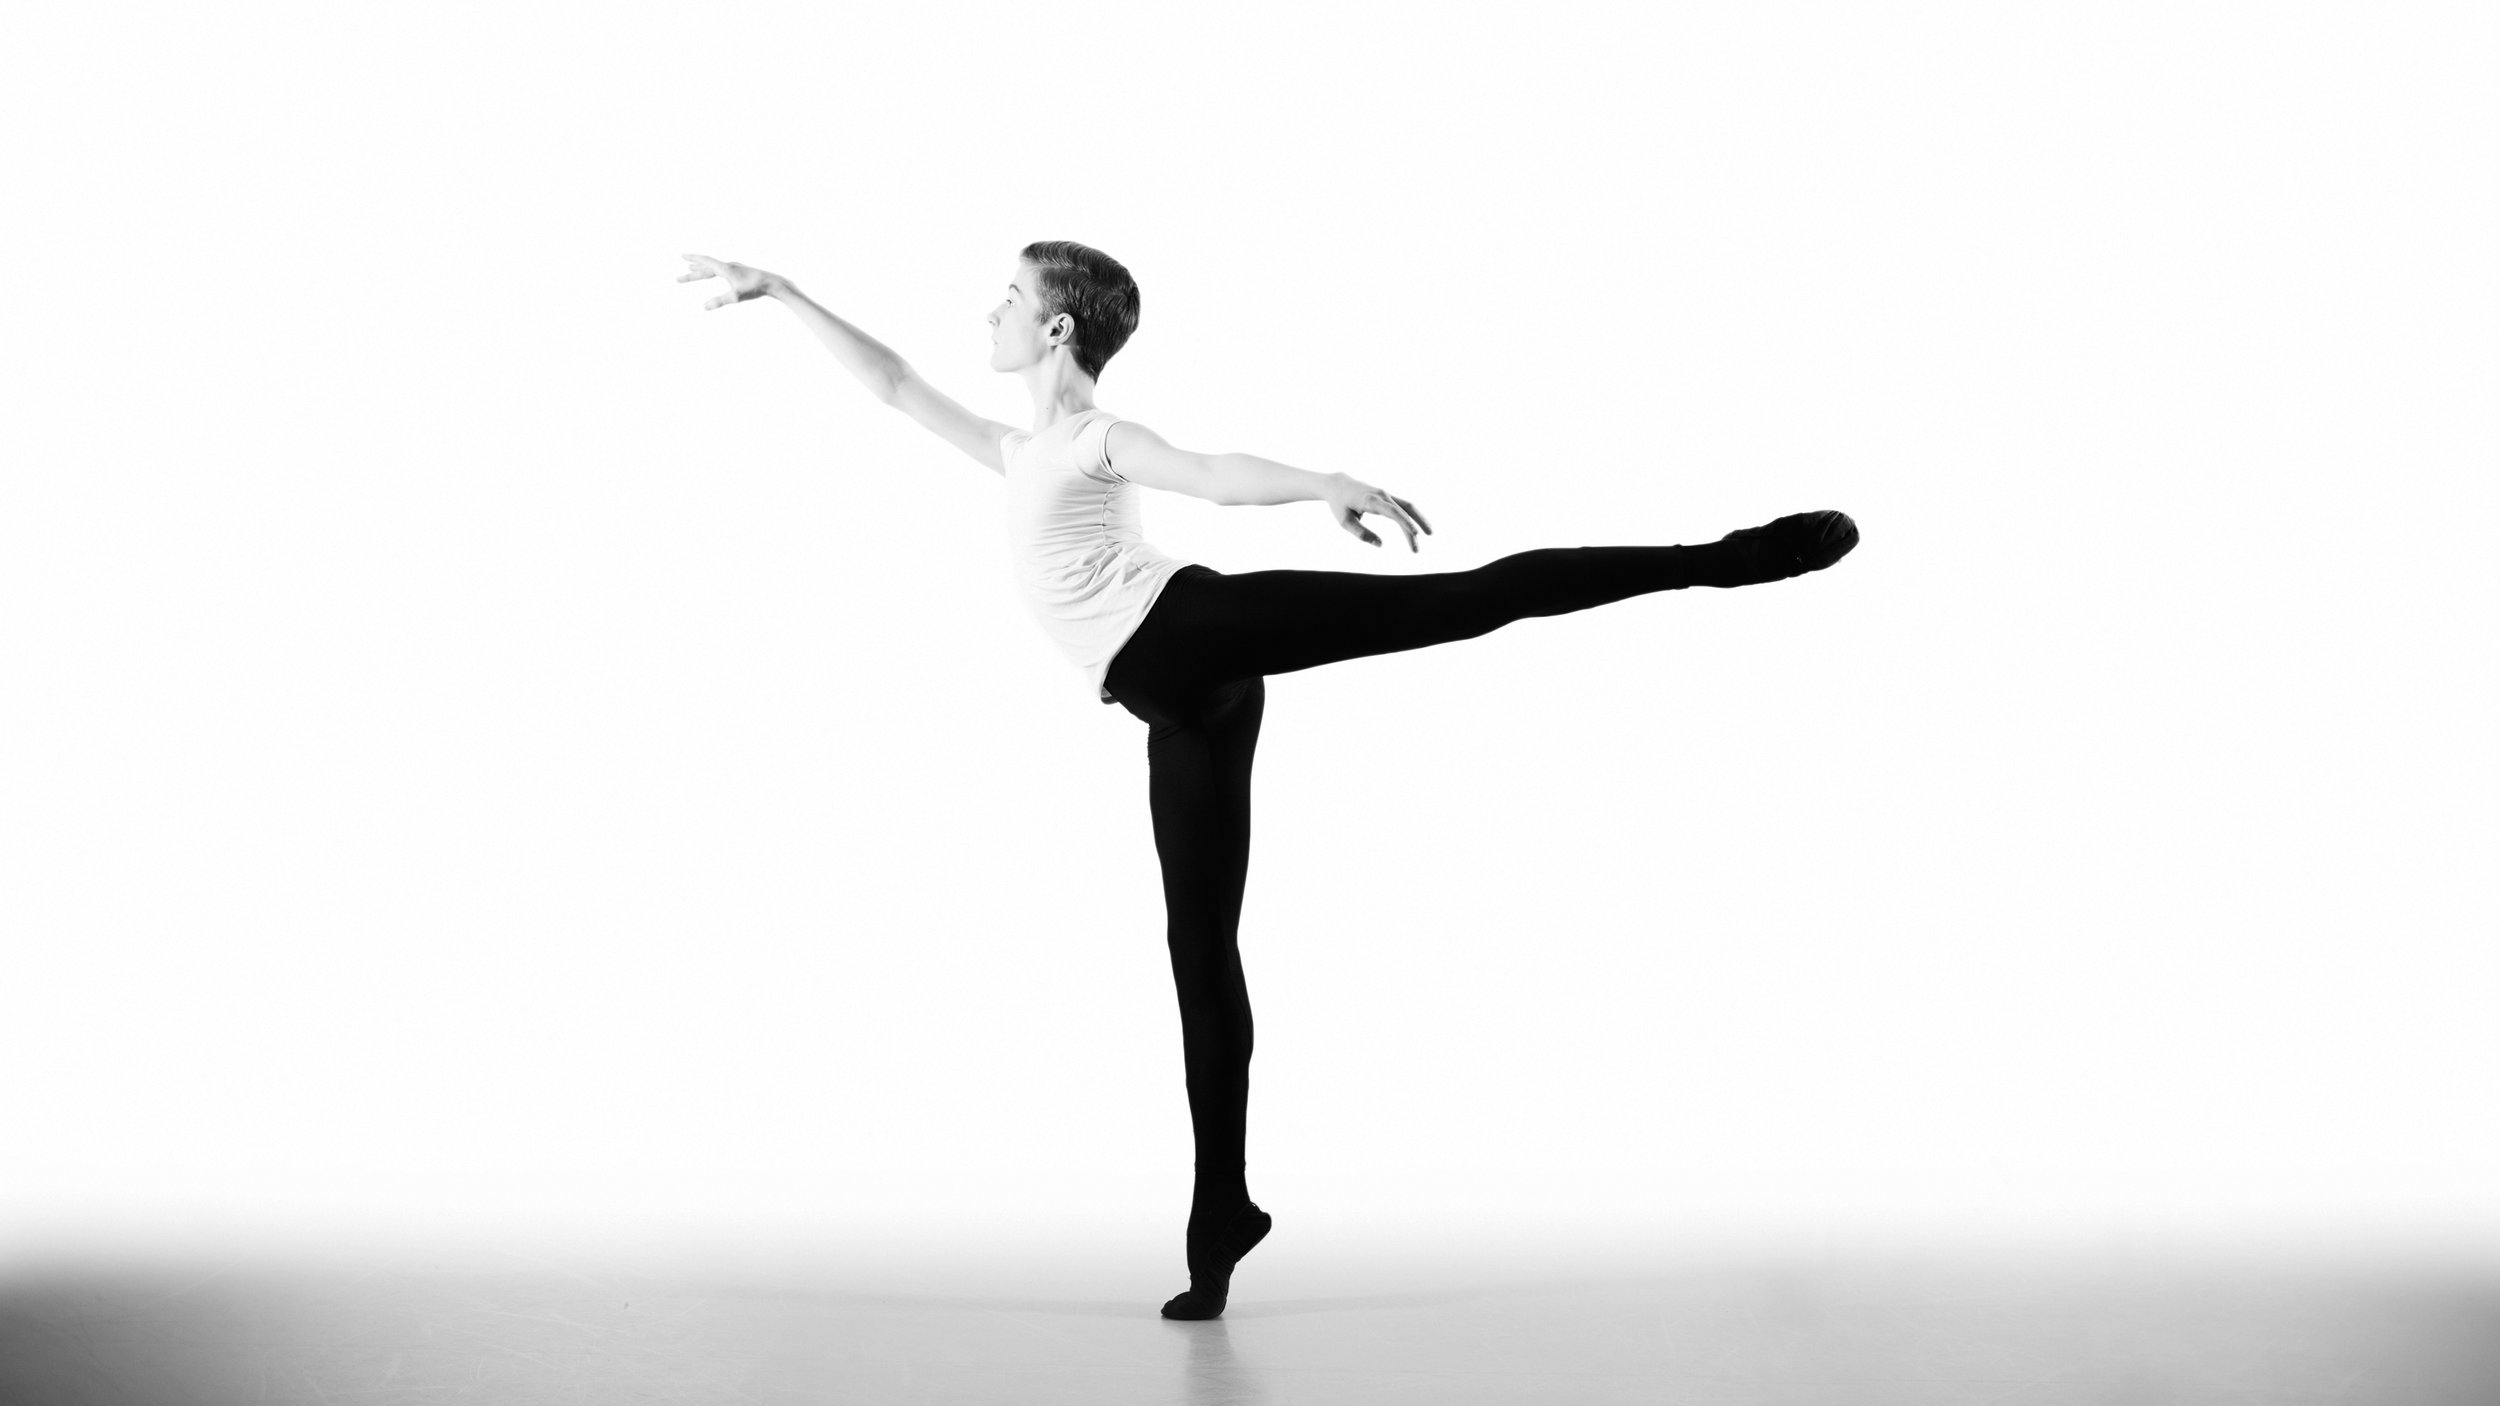 male-ballet-dancer-studio-black-and-white.jpg